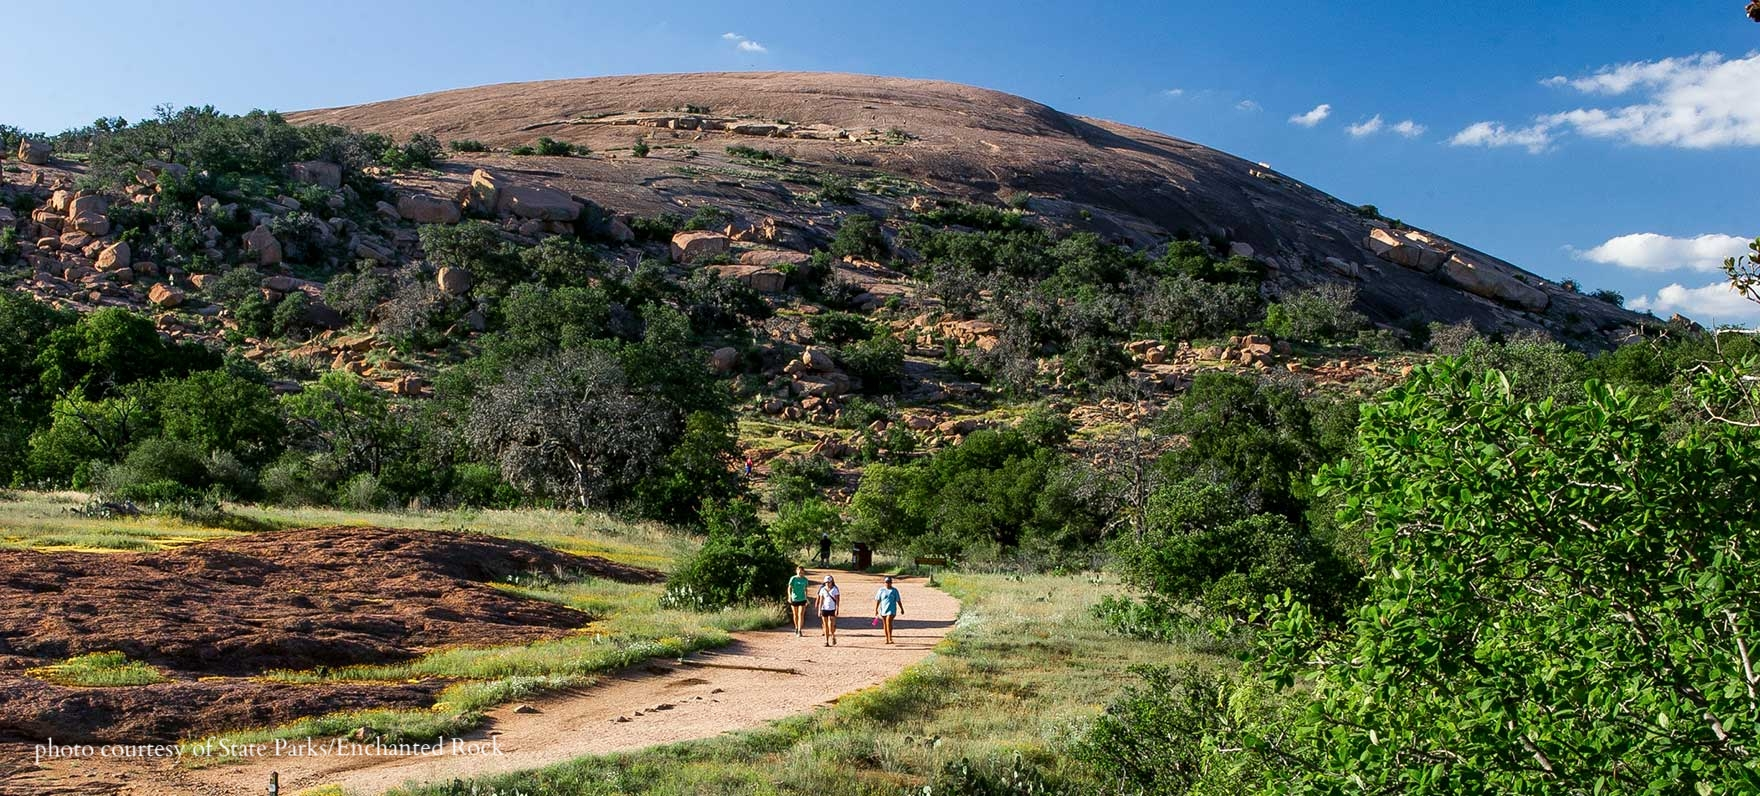 Enchanted rock - Climb the beautiful dome for spectacular views of the Hill Country.